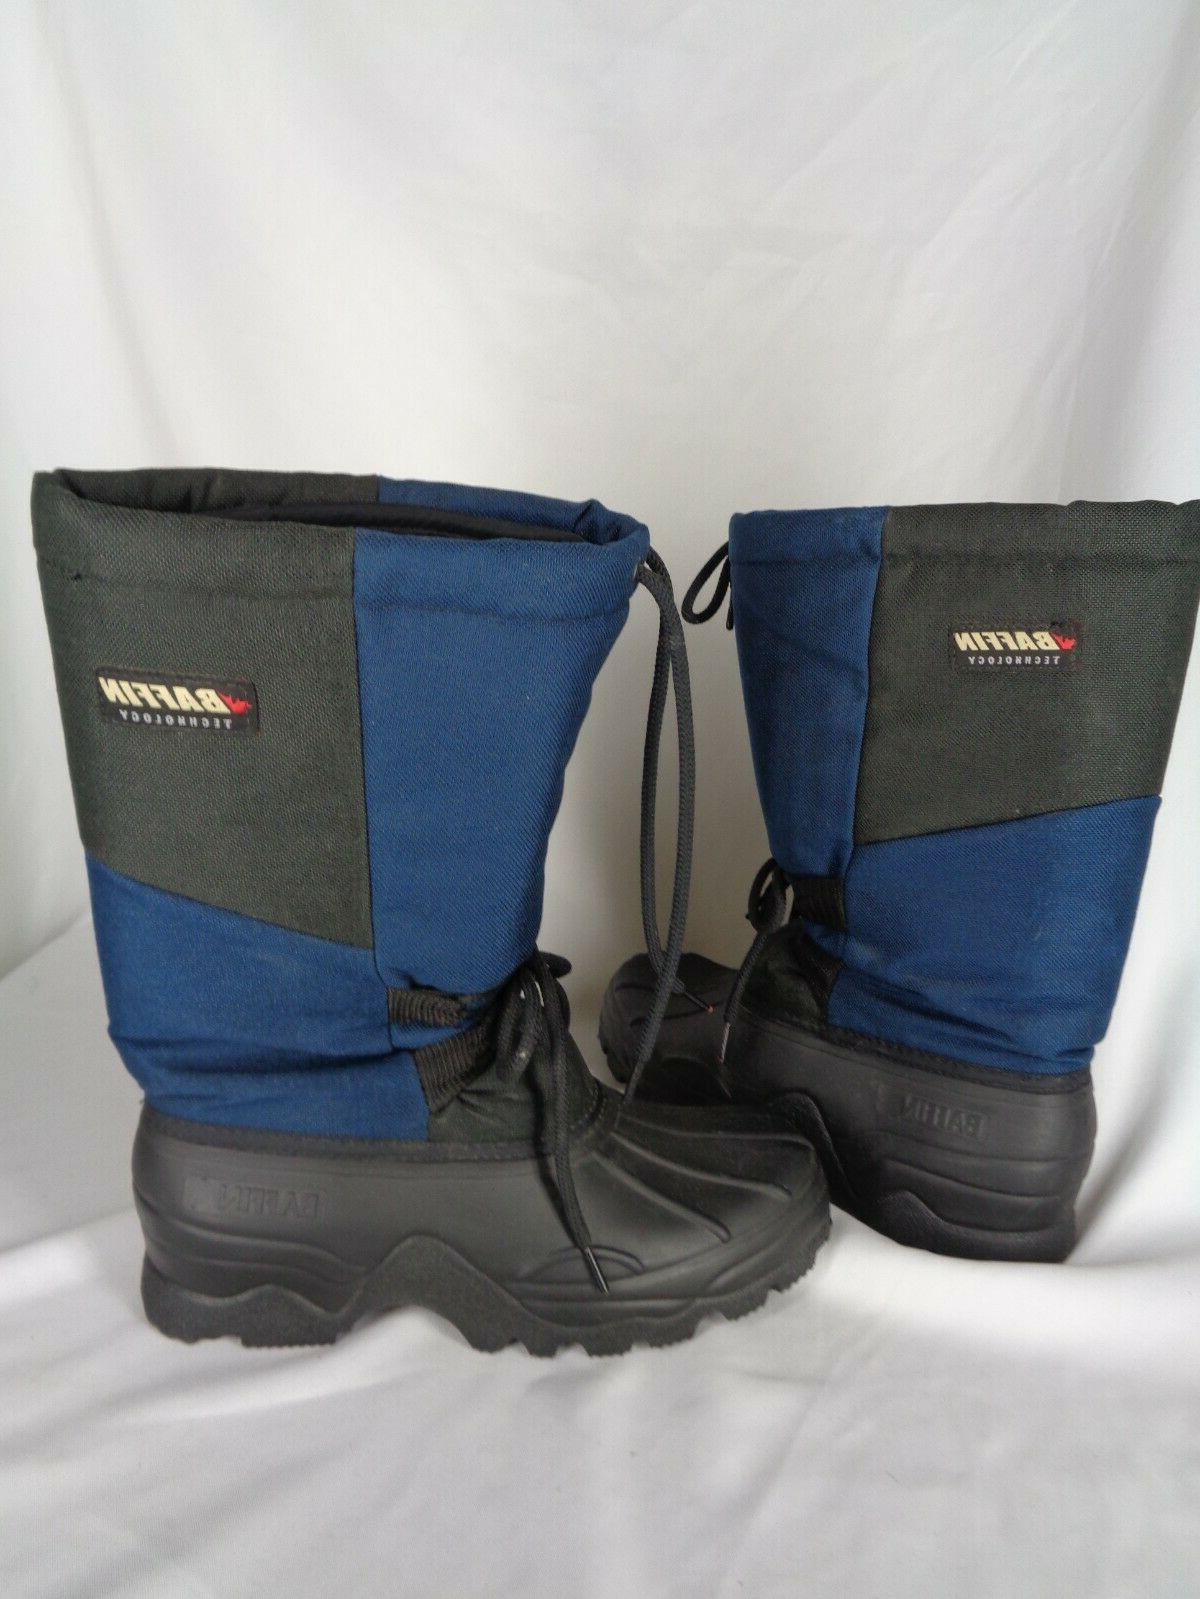 Baffin Insulated Snow boots 9 7 Black Wool lined